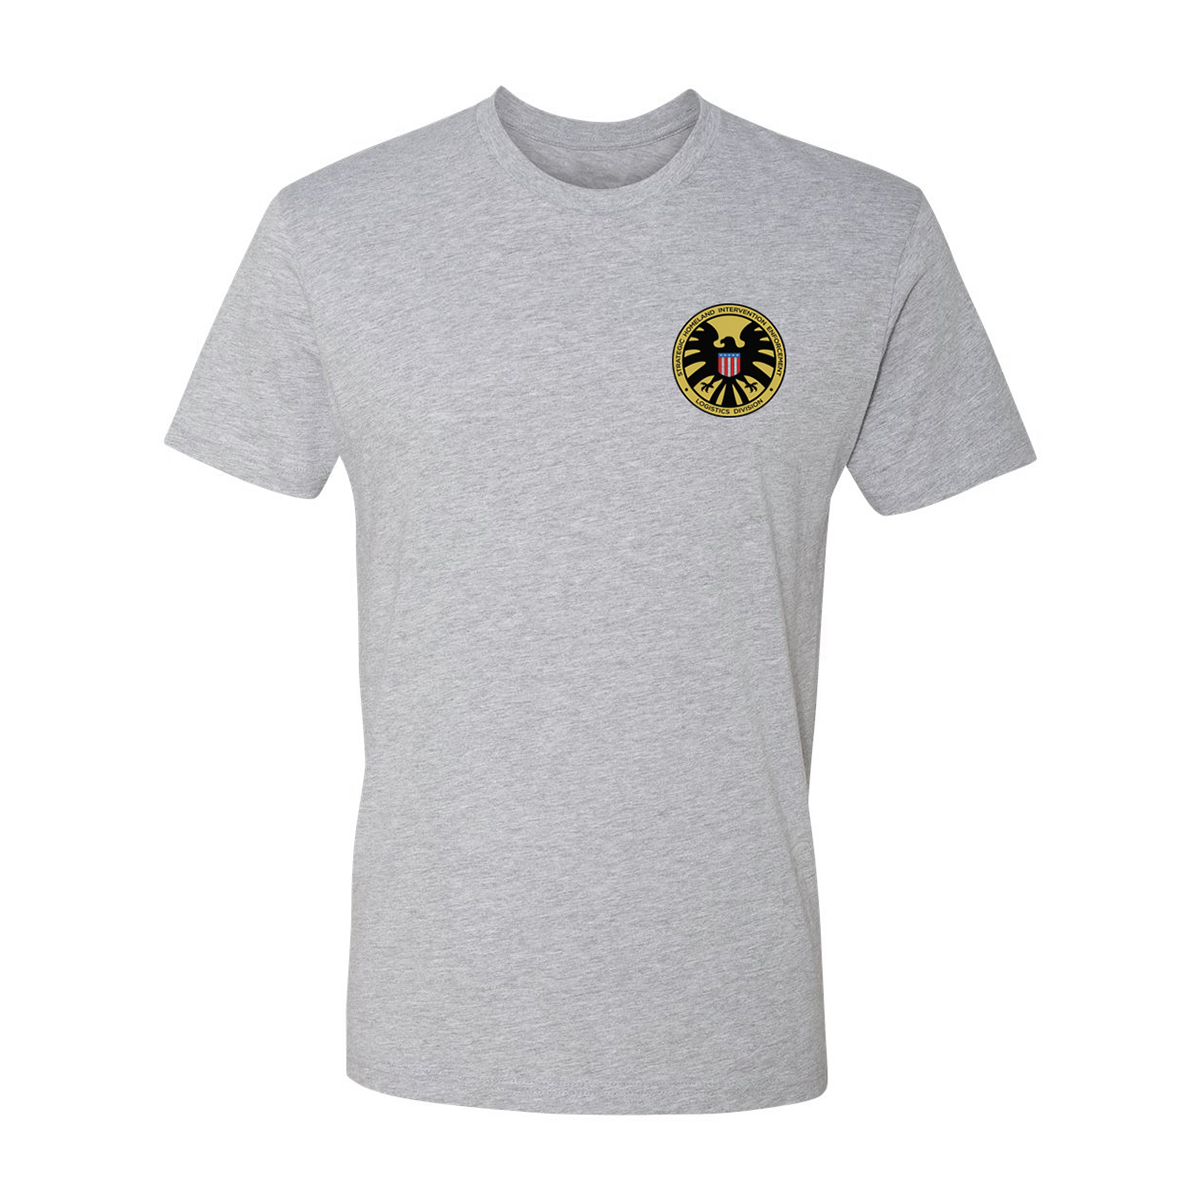 Marvel's Agents of S.H.I.E.L.D Badge T-Shirt